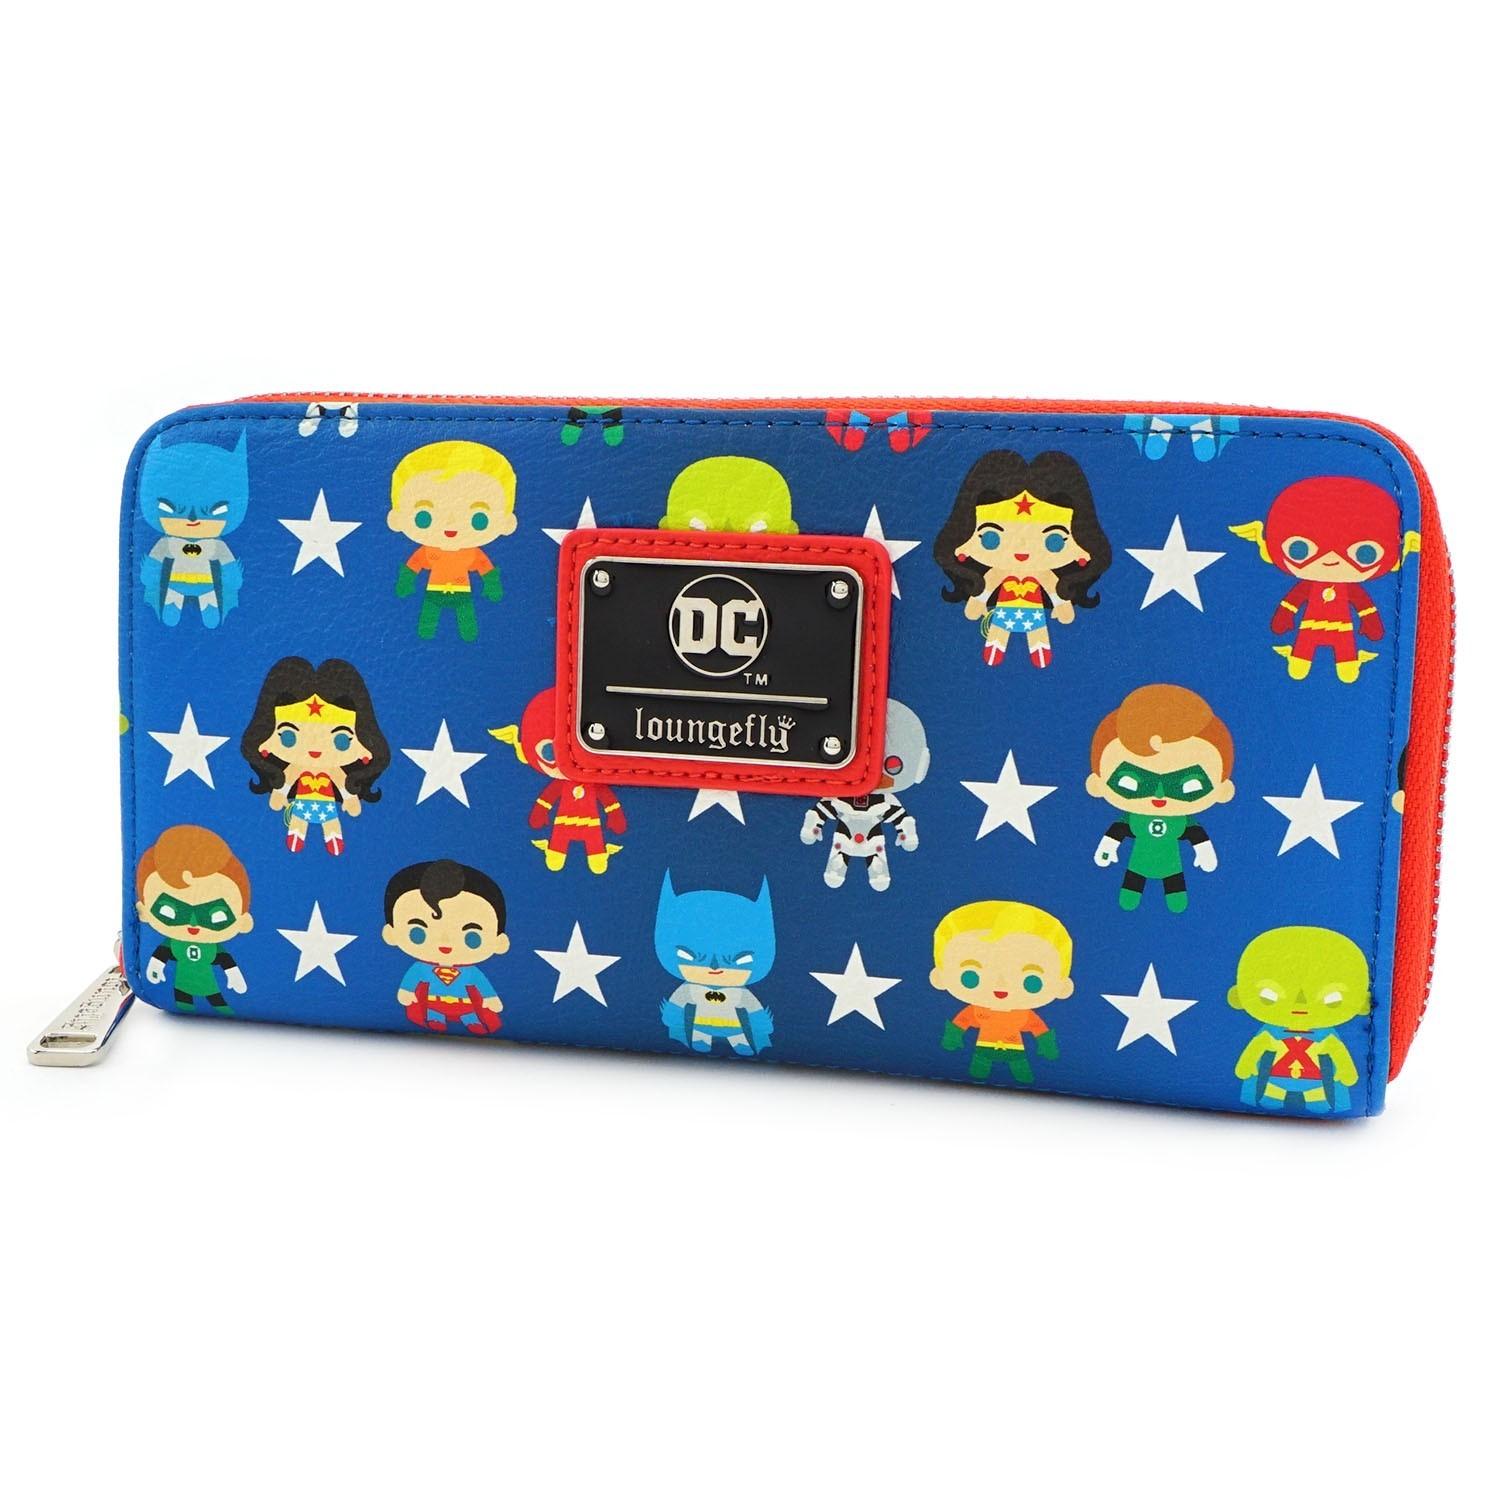 Loungefly: Justice League - Chibi Zip-Around Wallet image